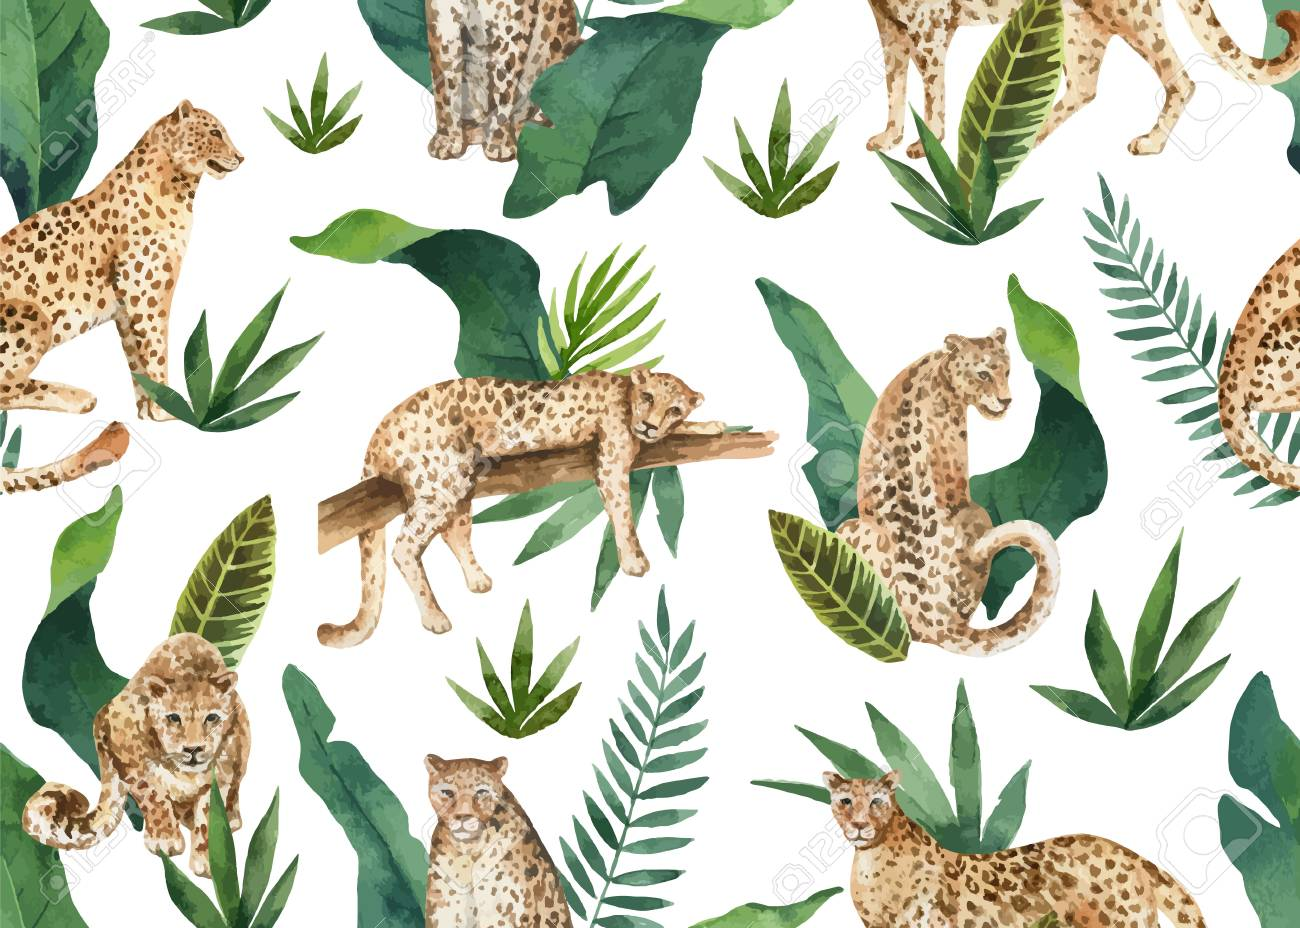 Watercolor vector seamless pattern of tropical leaves and leopards in jungle isolated on white background. Illustration for design textile, wrapping paper, postcards. Trendy style. - 116289520